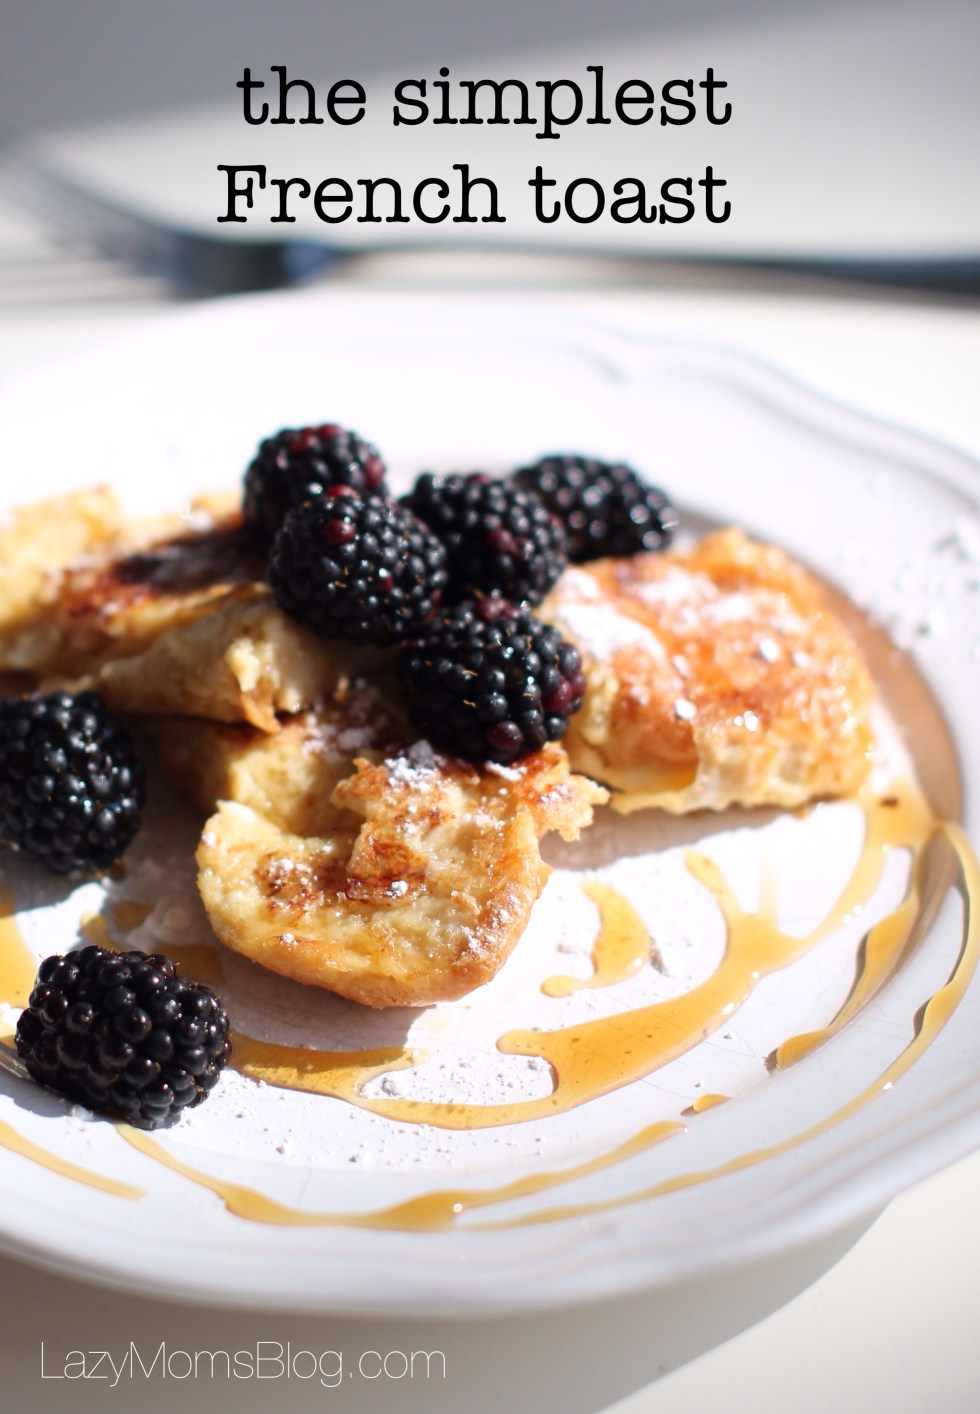 The simplest French toast